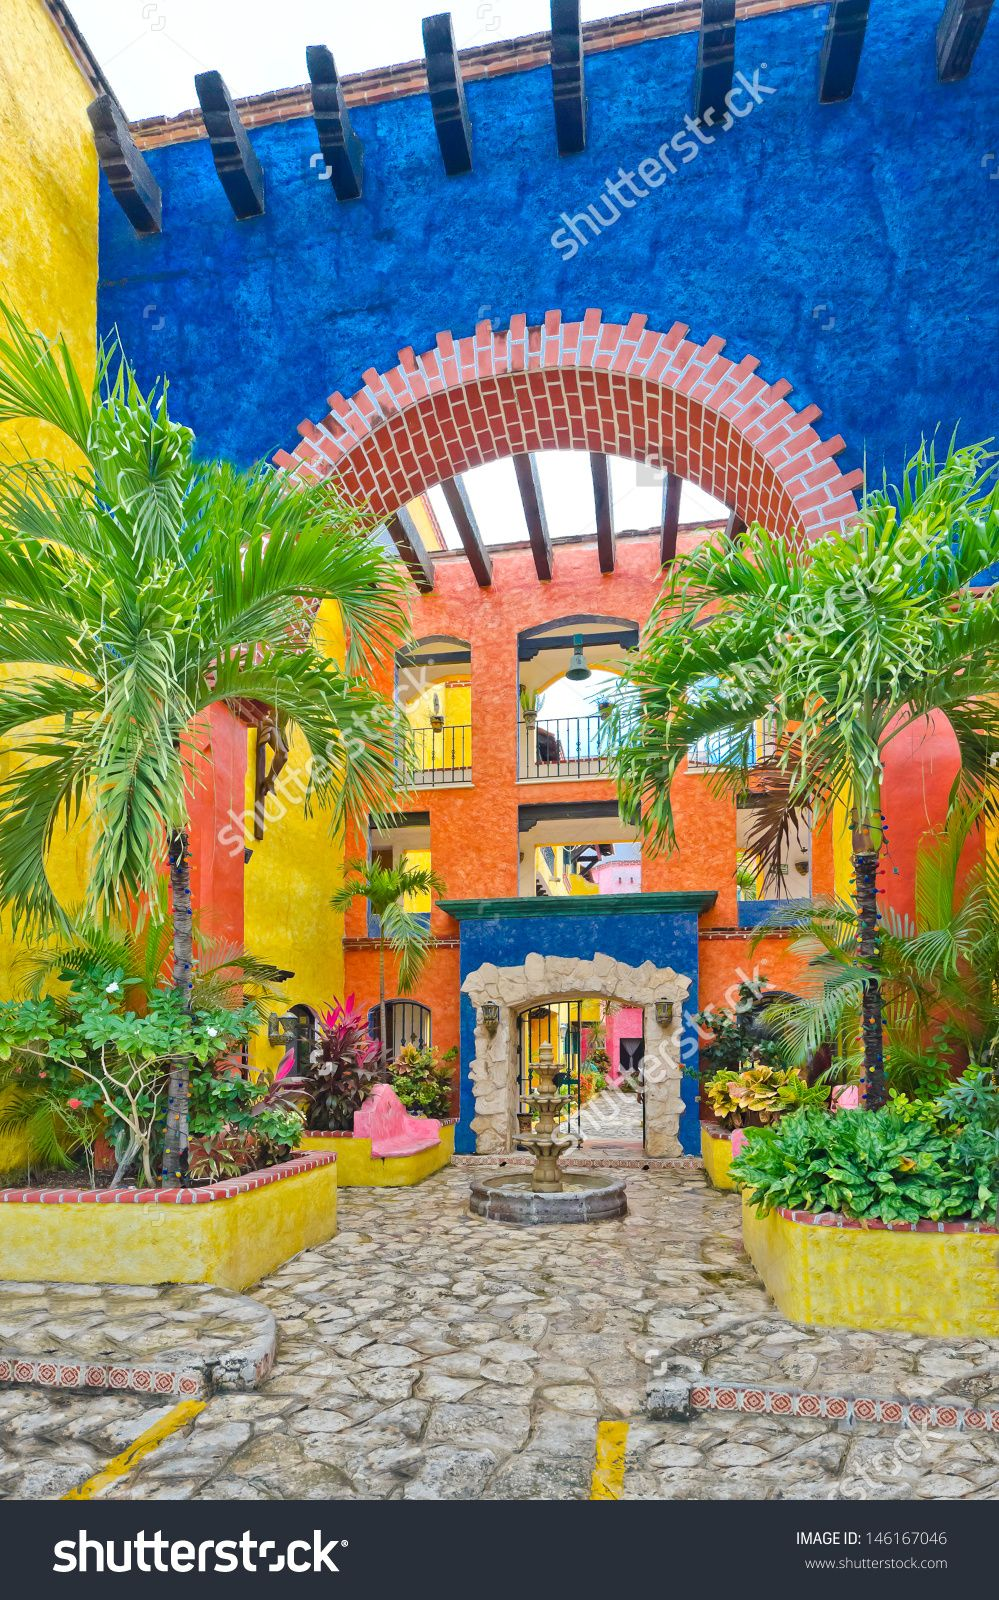 Stock Photo Fragment Of The Mexican Building In Traditional Caribbean Style Colorful Inner Court Yard Plaza 146167046 999x1600